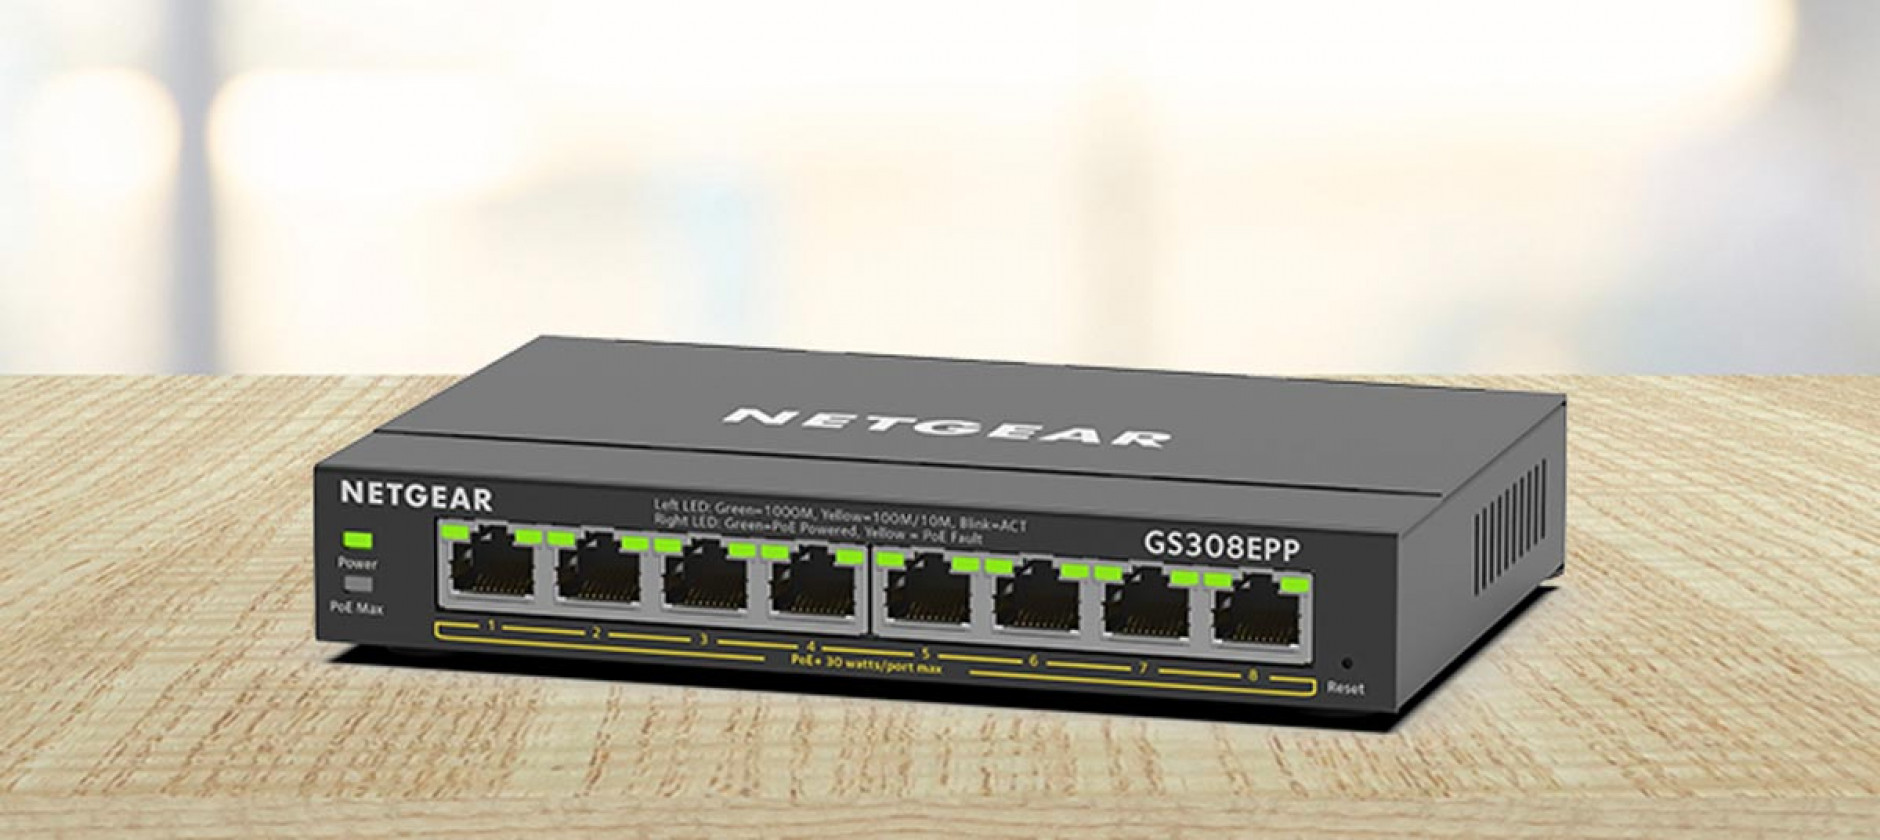 Netgear lancia quattro nuovi switch Gigabit Ethernet Plus